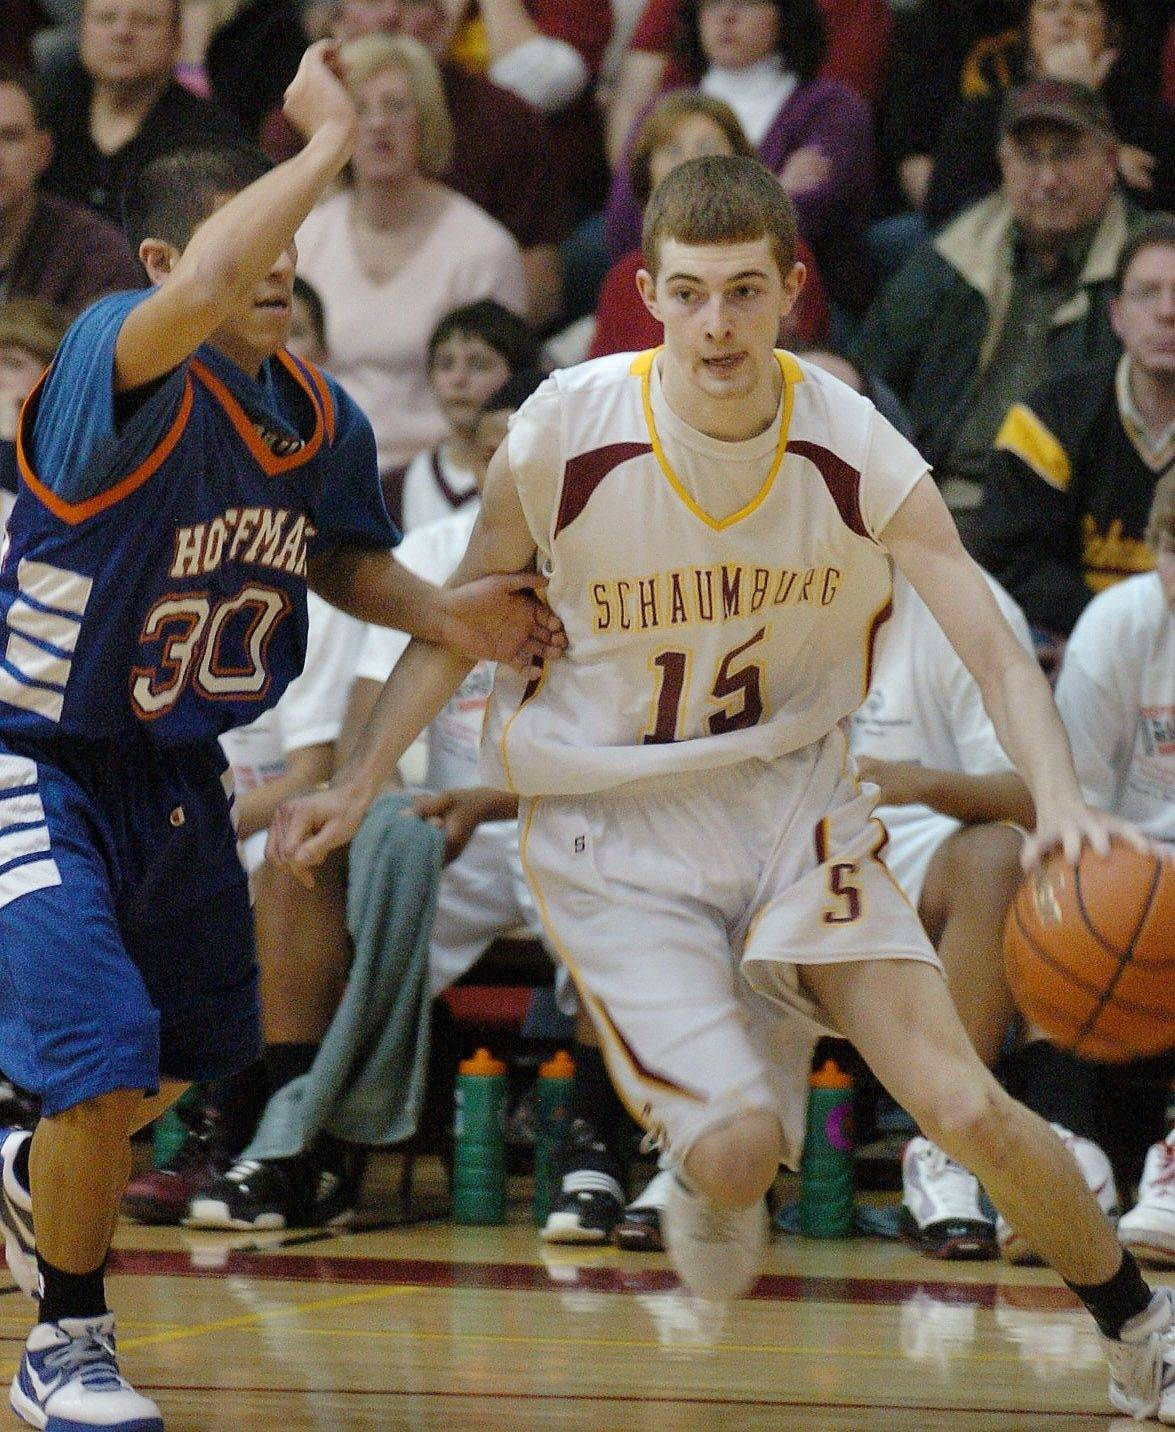 Schaumburg's Glenn Frost drives to the basket against Hoffman Estates.